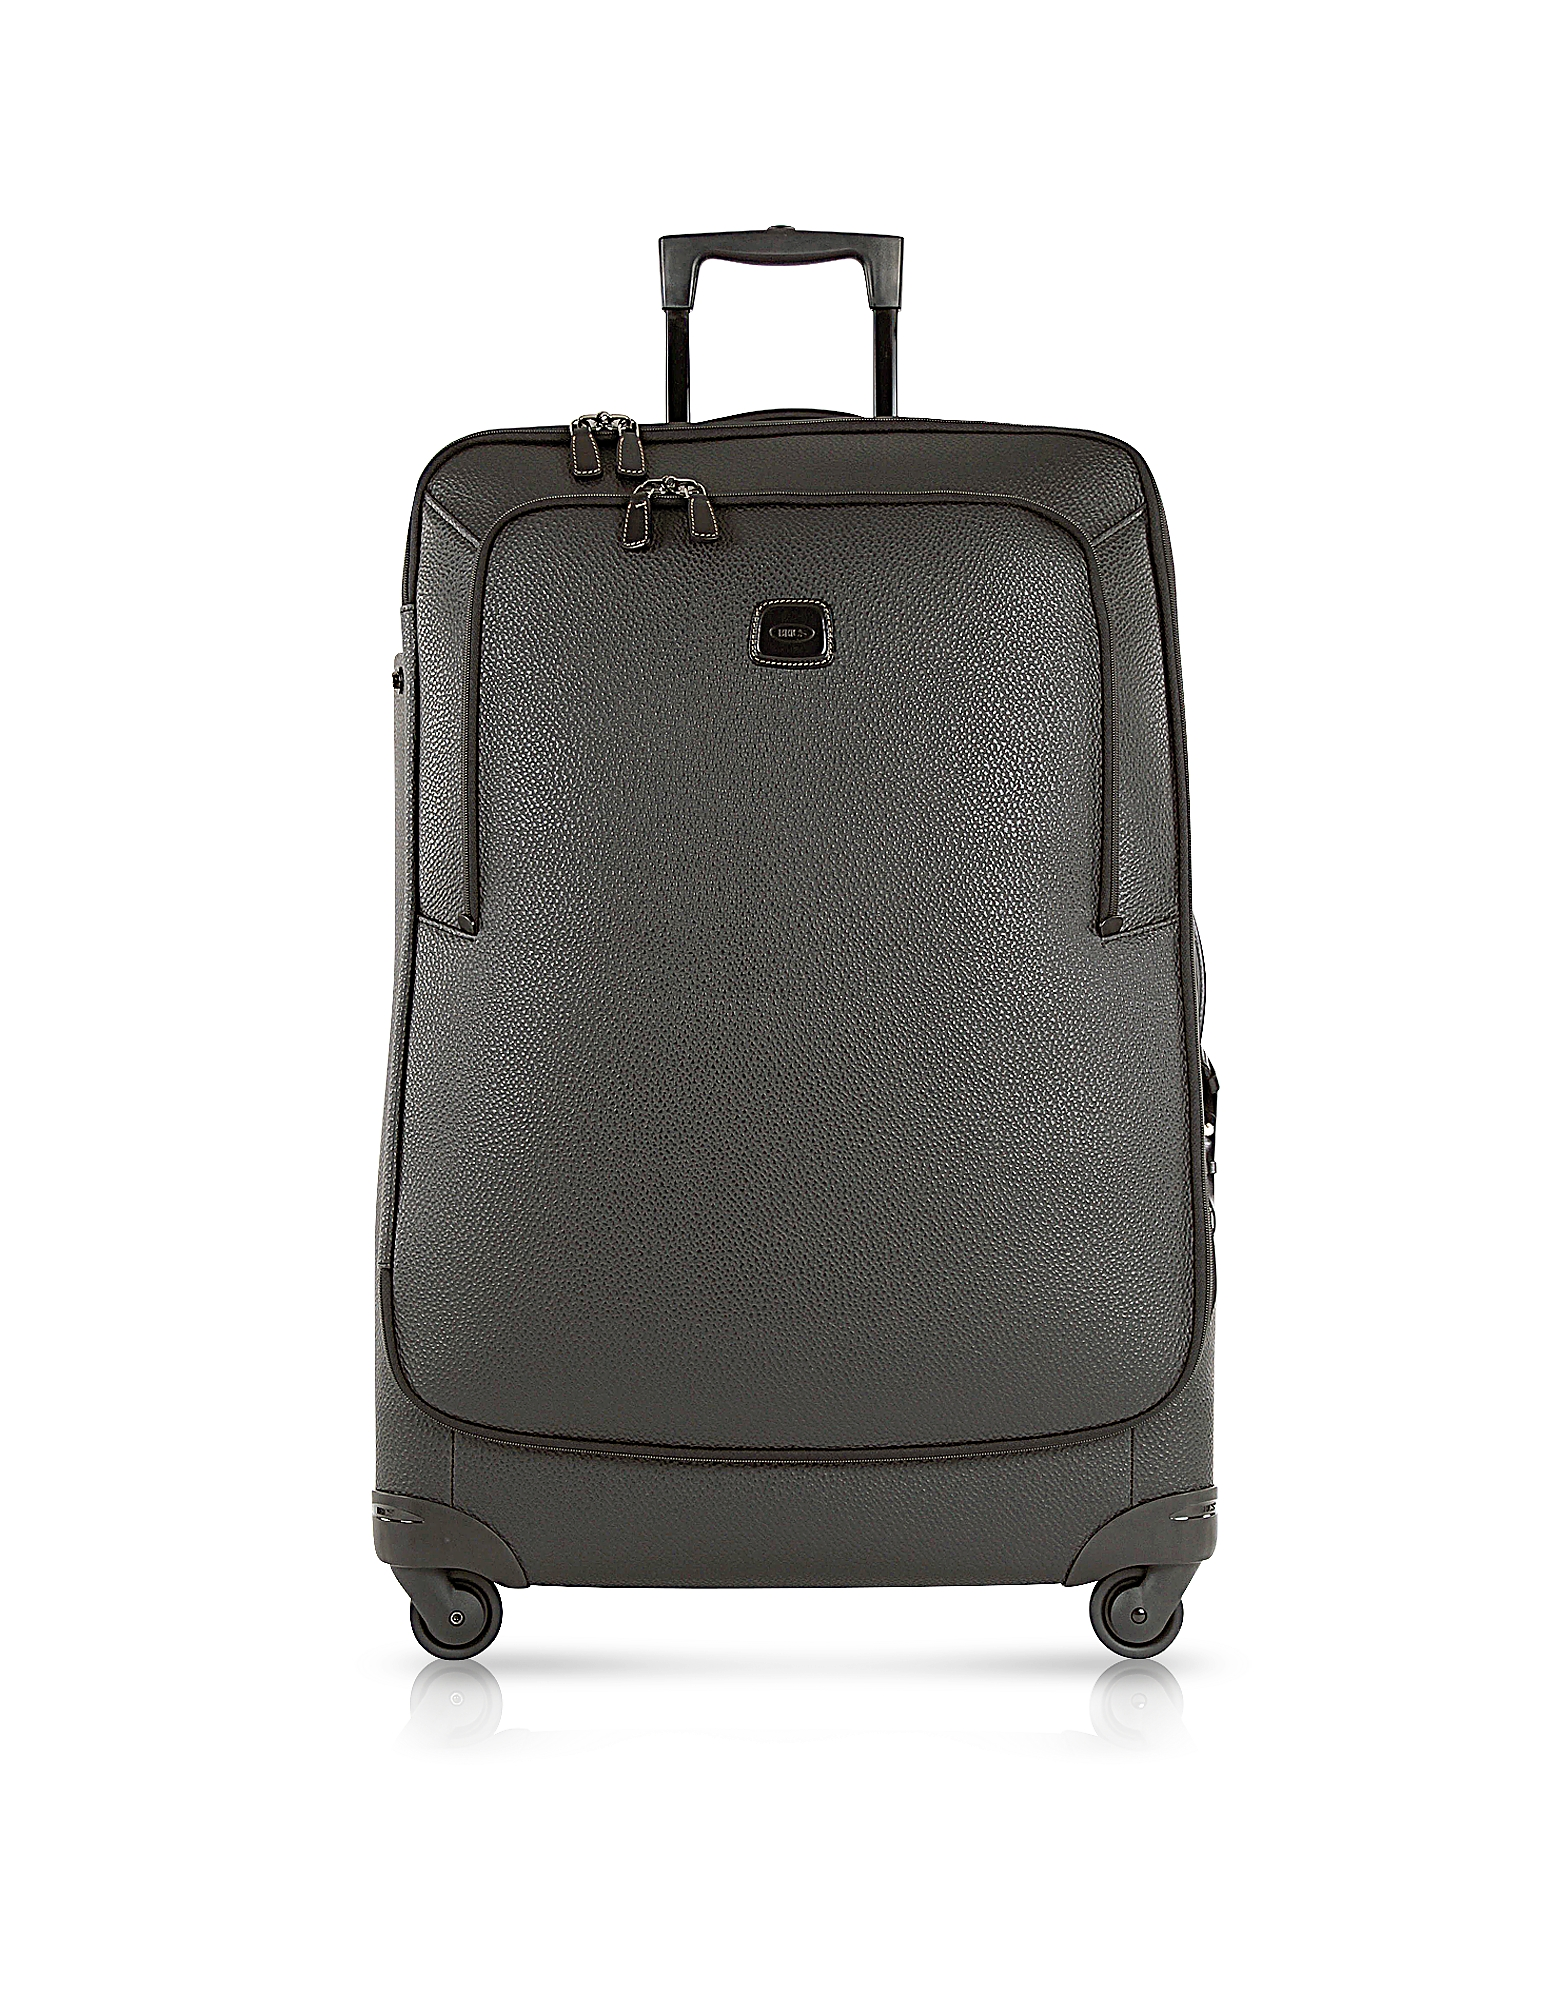 Bric's Travel Bags, Magellano Black 32in Ultra Light Suitcase